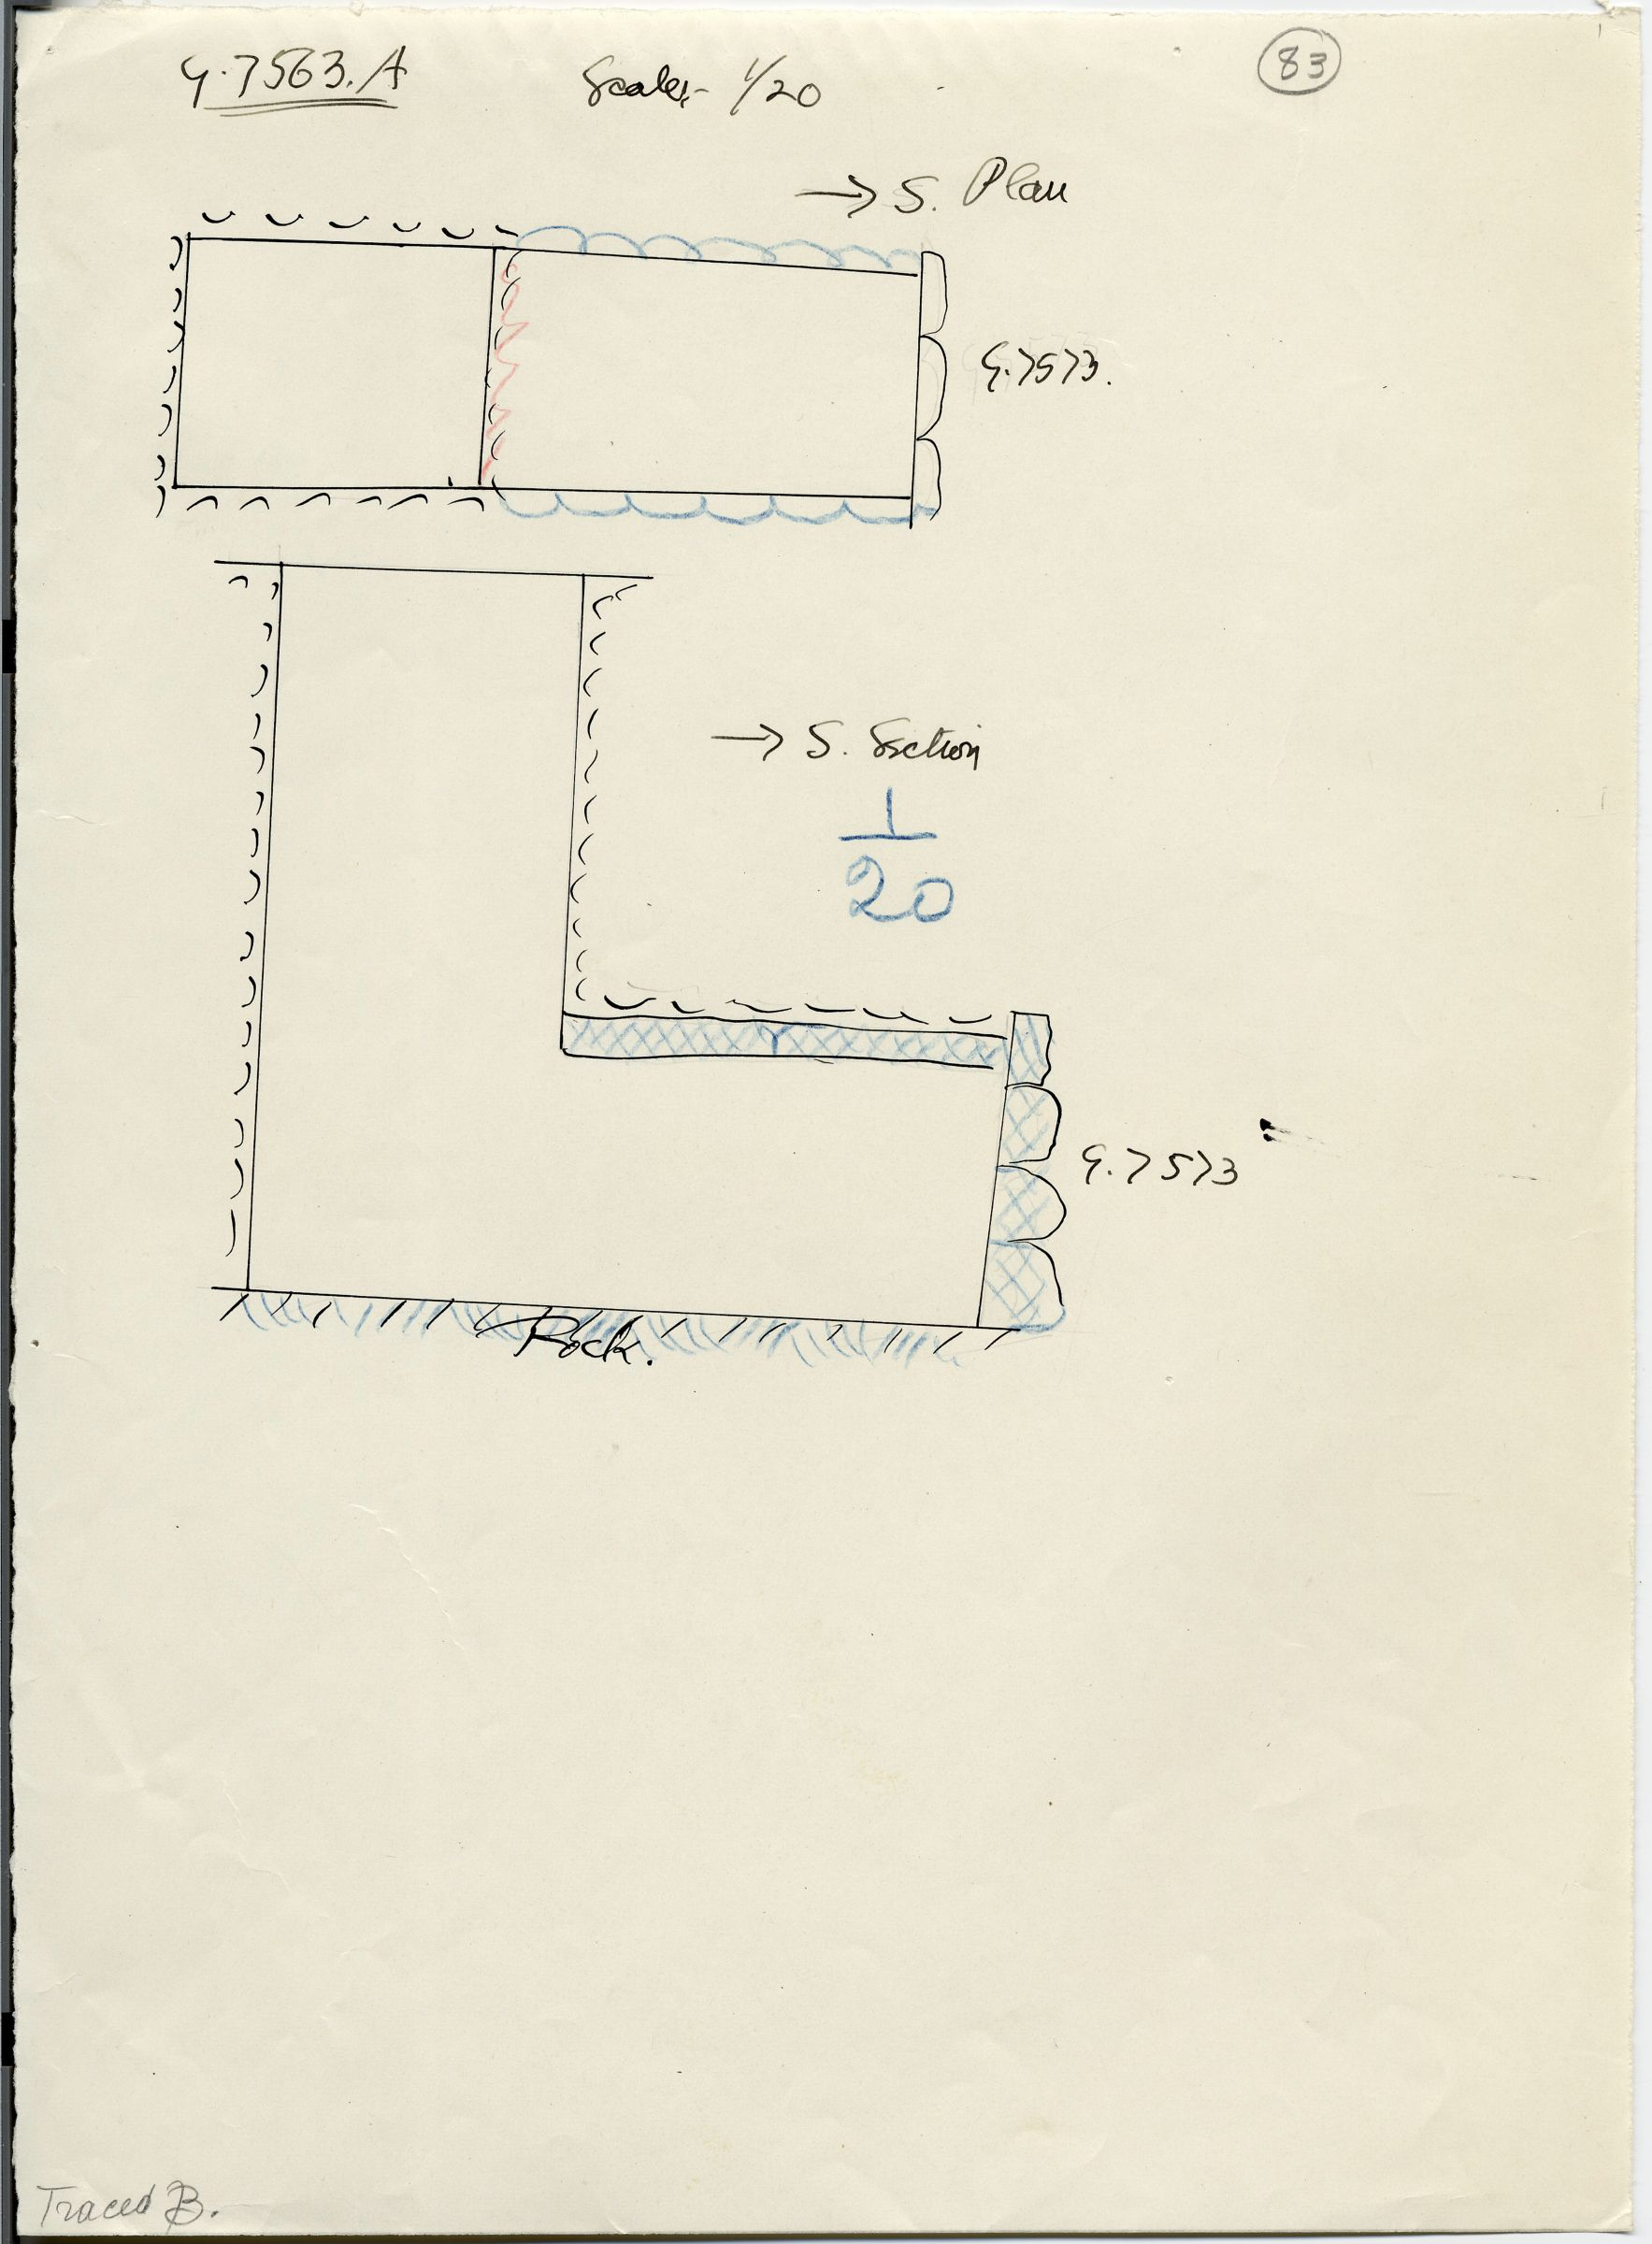 Maps and plans: G 7563, Shaft A